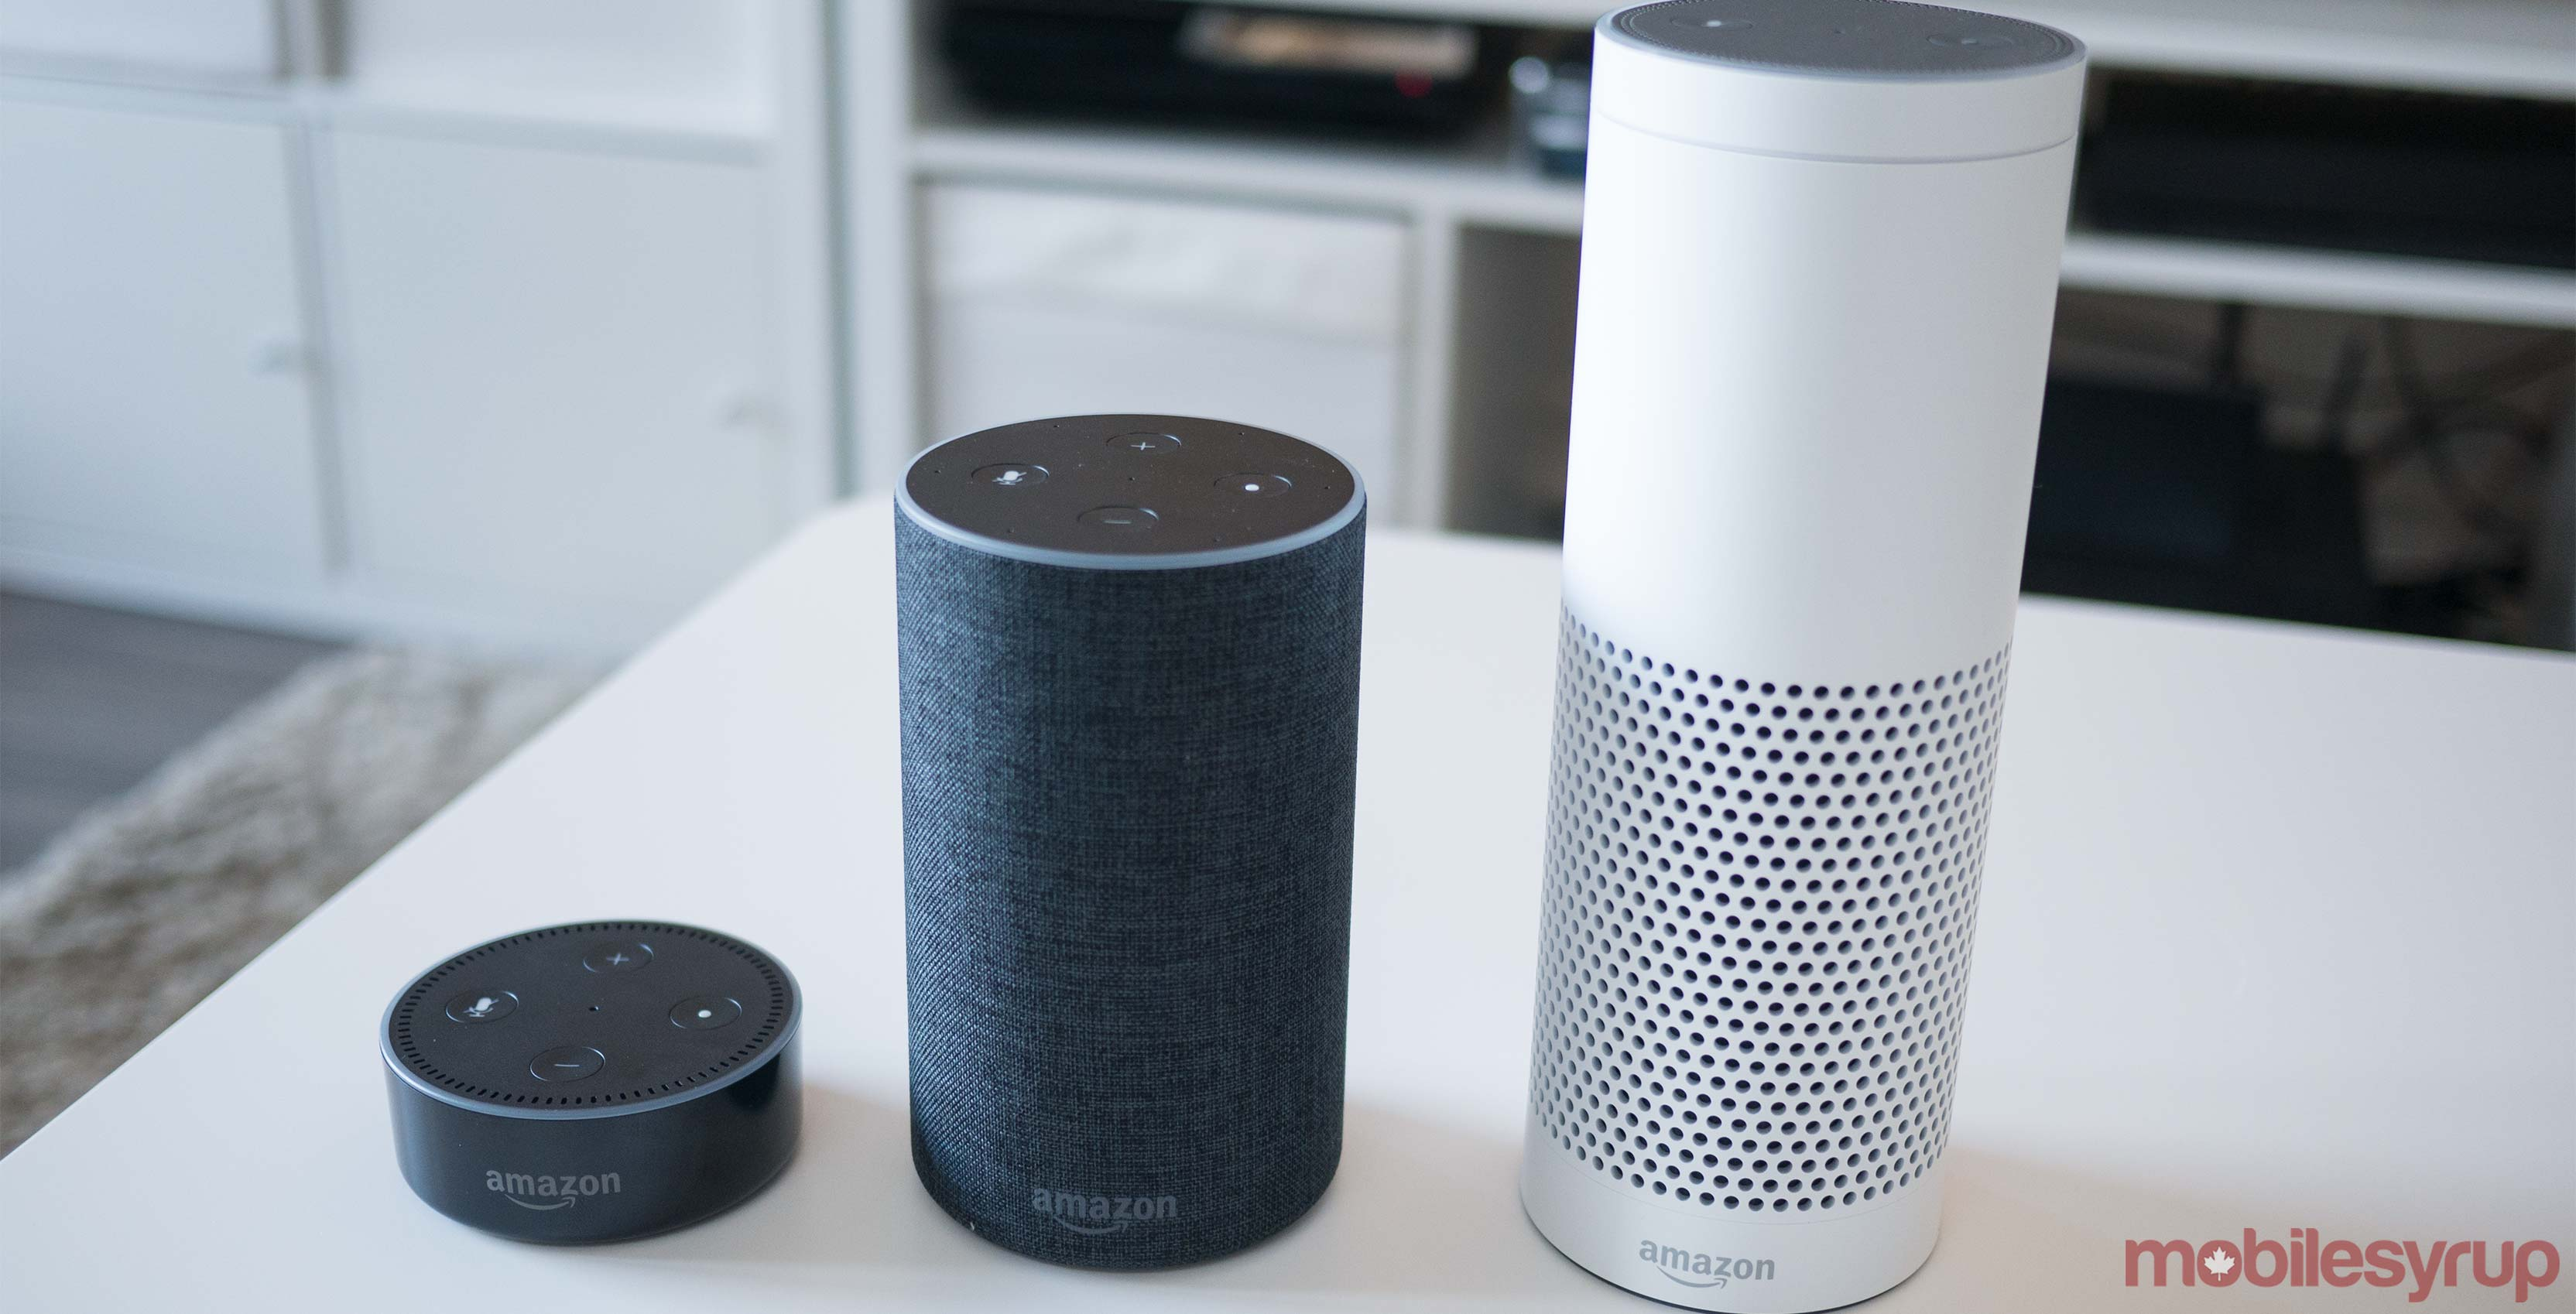 Amazon's Follow-Up Mode for Alexa Devices Would be Great With Google Home